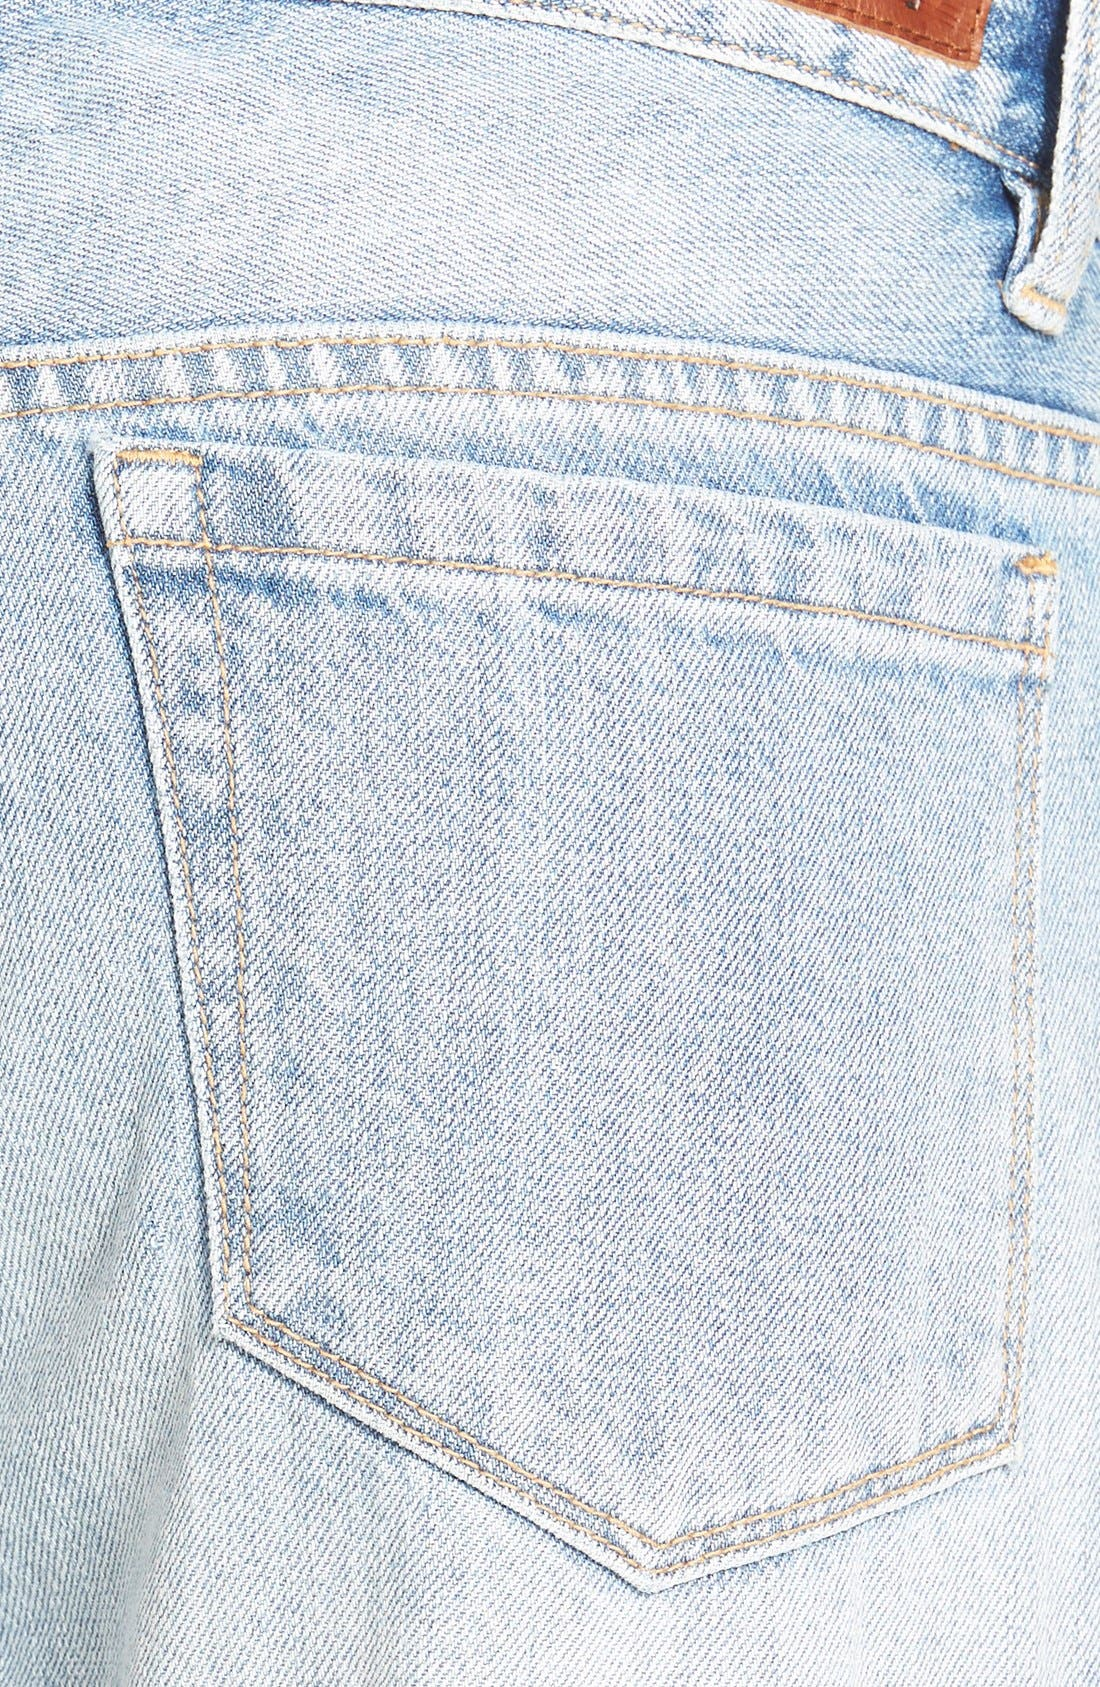 Alternate Image 3  - BLANKNYC 'My Sugar Daddy' Crop Boyfriend Jeans (Blue)